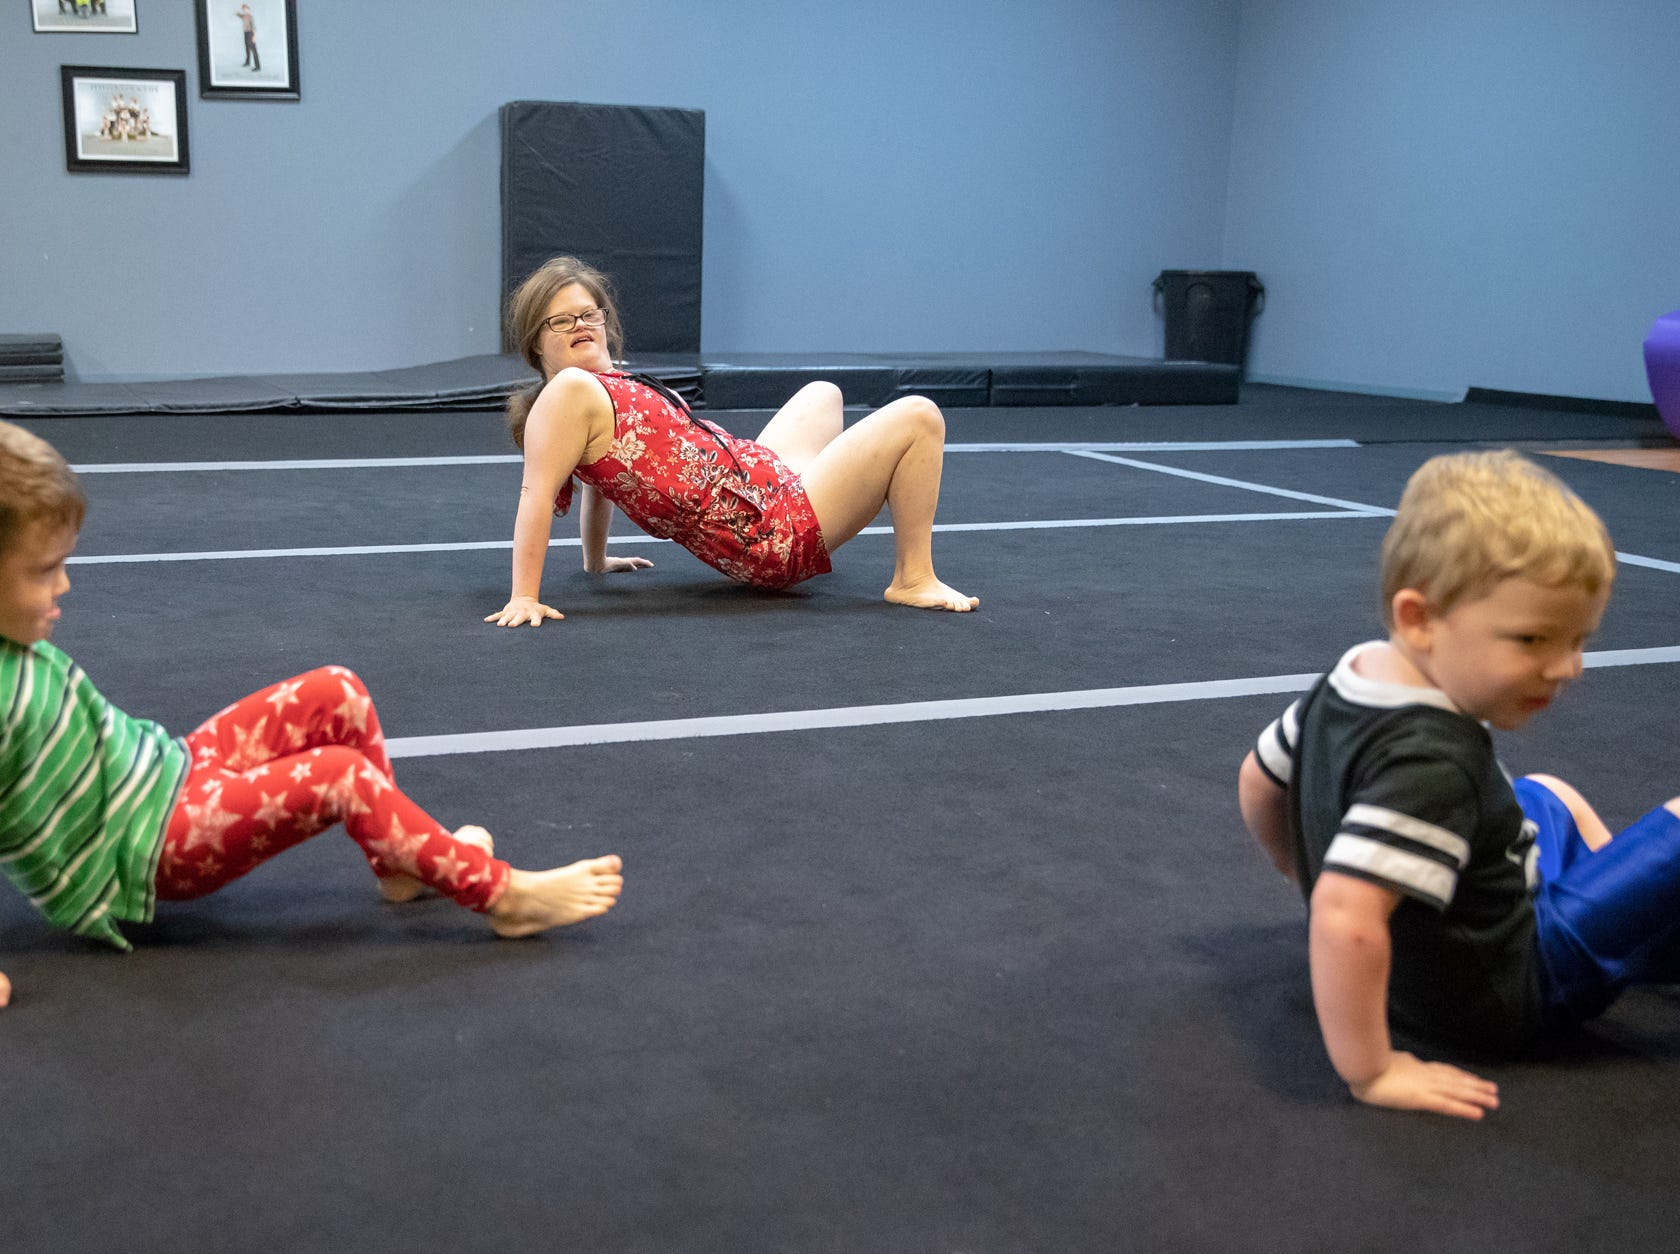 """""""Teachers always have to be a little bit strict on the kids and make sure they're doing what they're supposed to be doing,"""" said Kari Kermode, owner of Style Dance Academy in Franklin, Ind., on Tuesday, Oct. 9, 2018. """"She brings a glow, a different aspect to the room. She wants every kid to just have fun."""""""